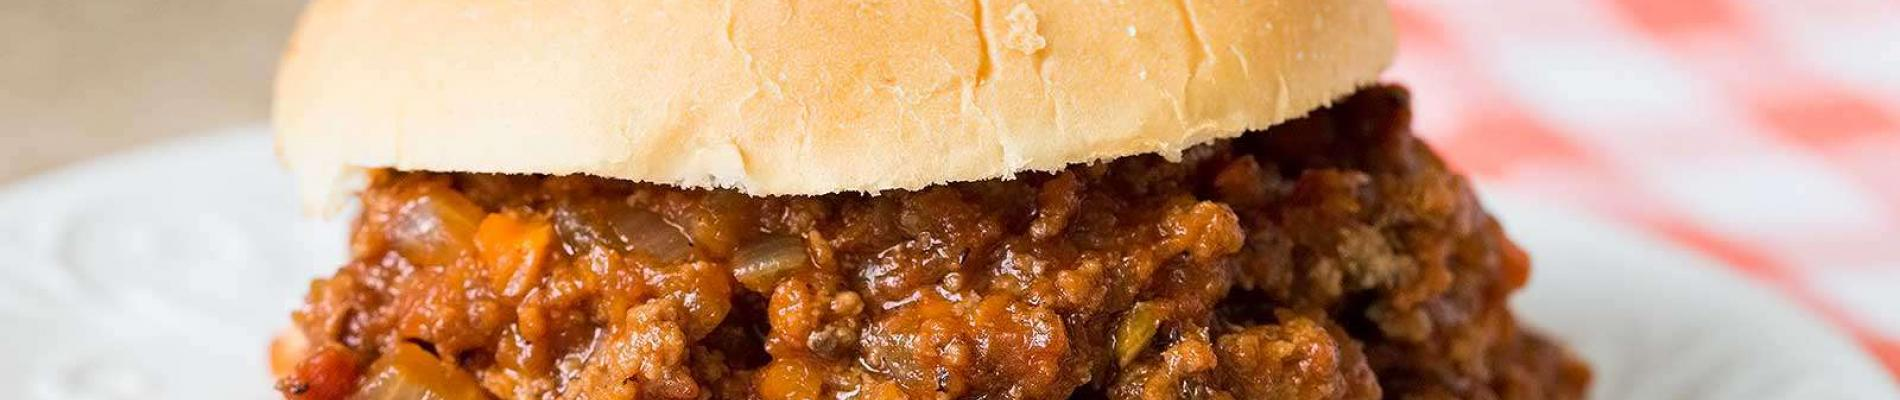 Sloppy Joes in the Next Courtyard!